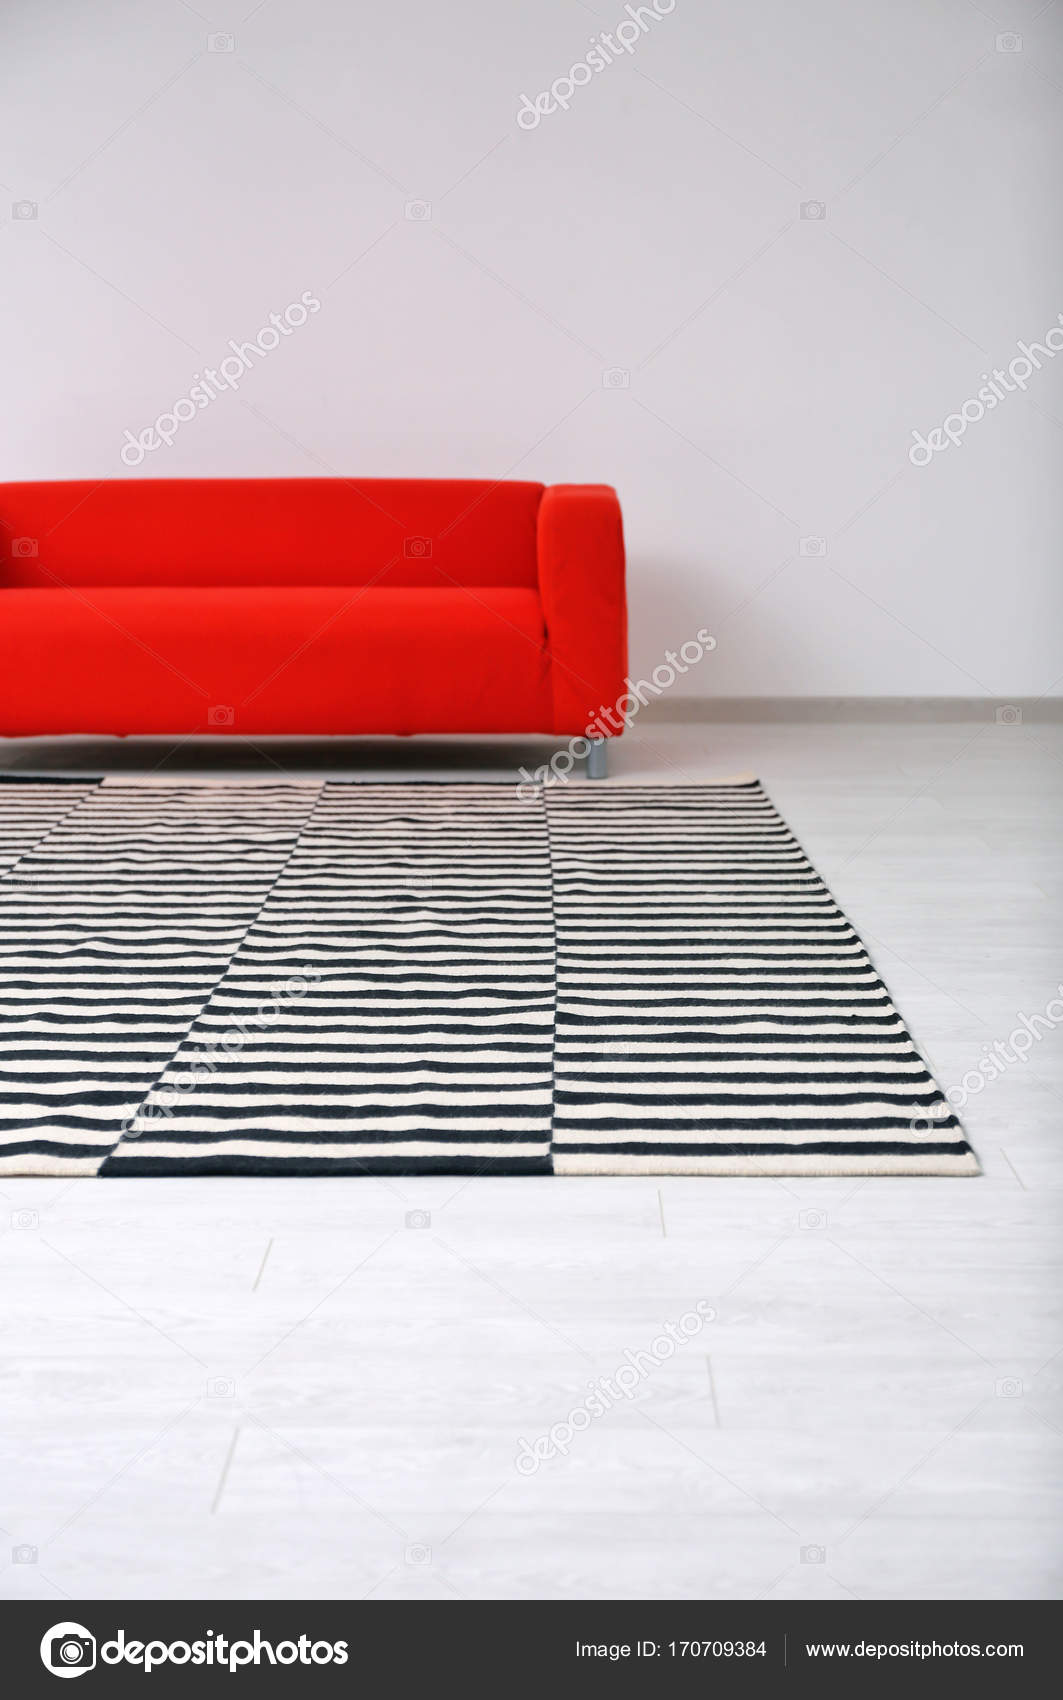 Black and white striped carpet on floor